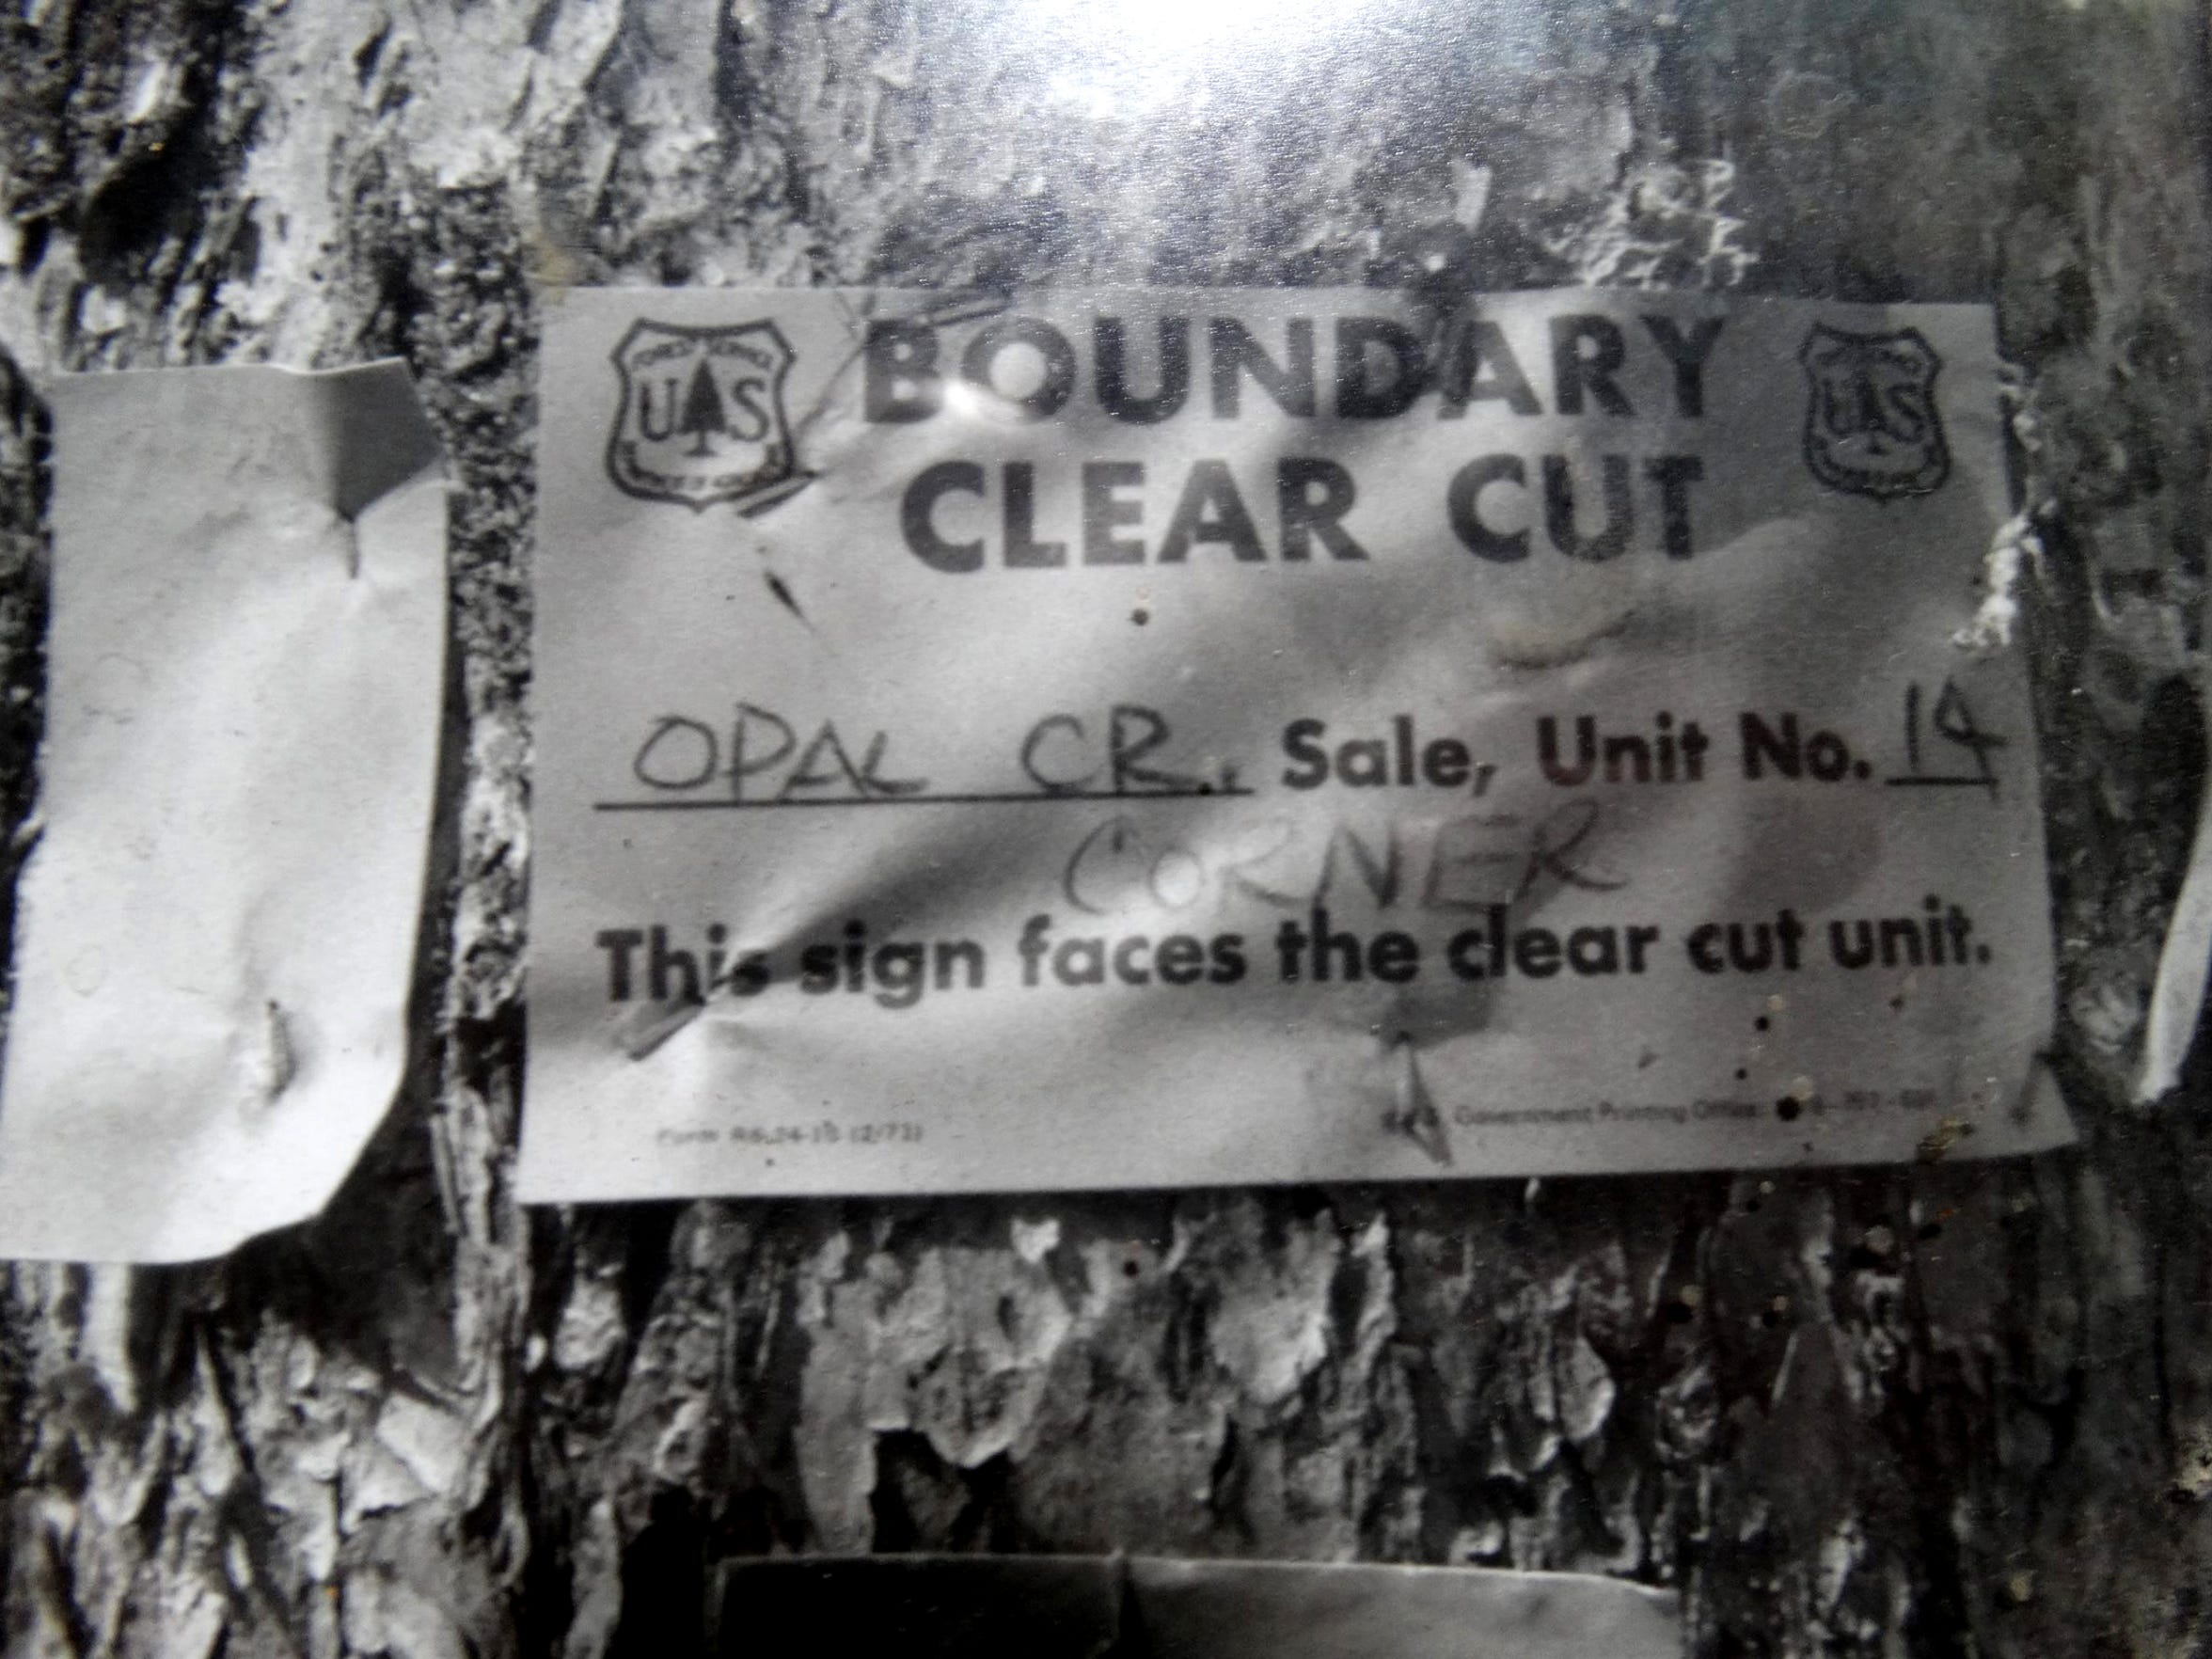 This boundary marker was placed in 1981, when the U.S. Forest Service planned to offer the Opal Creek Timber Sale.